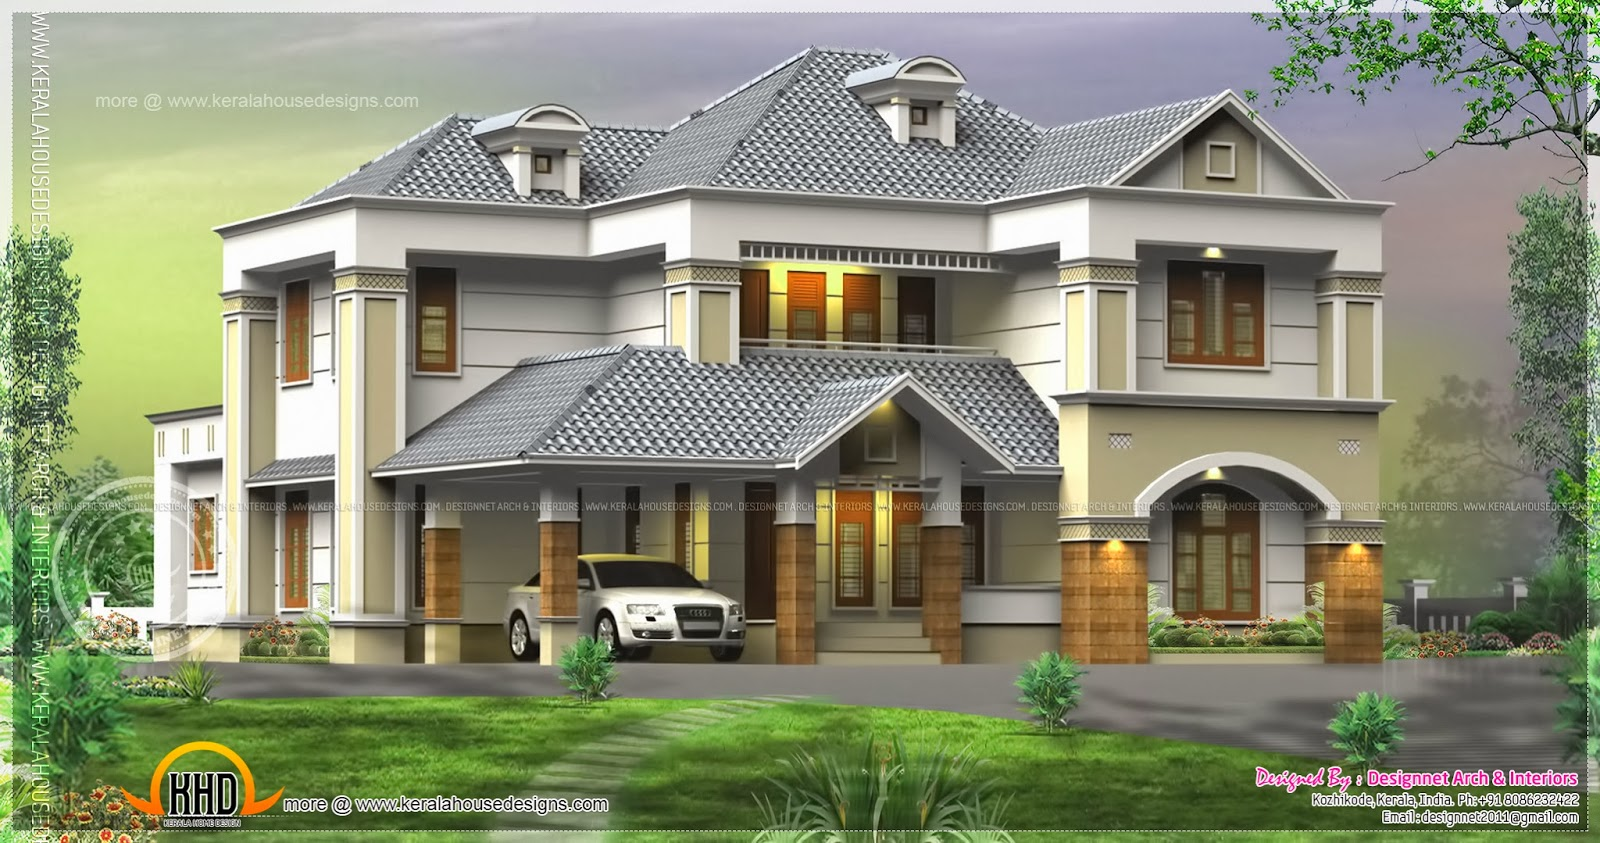 Beautiful Flat Roof House Design In 2470 Square Feet: three d house plans